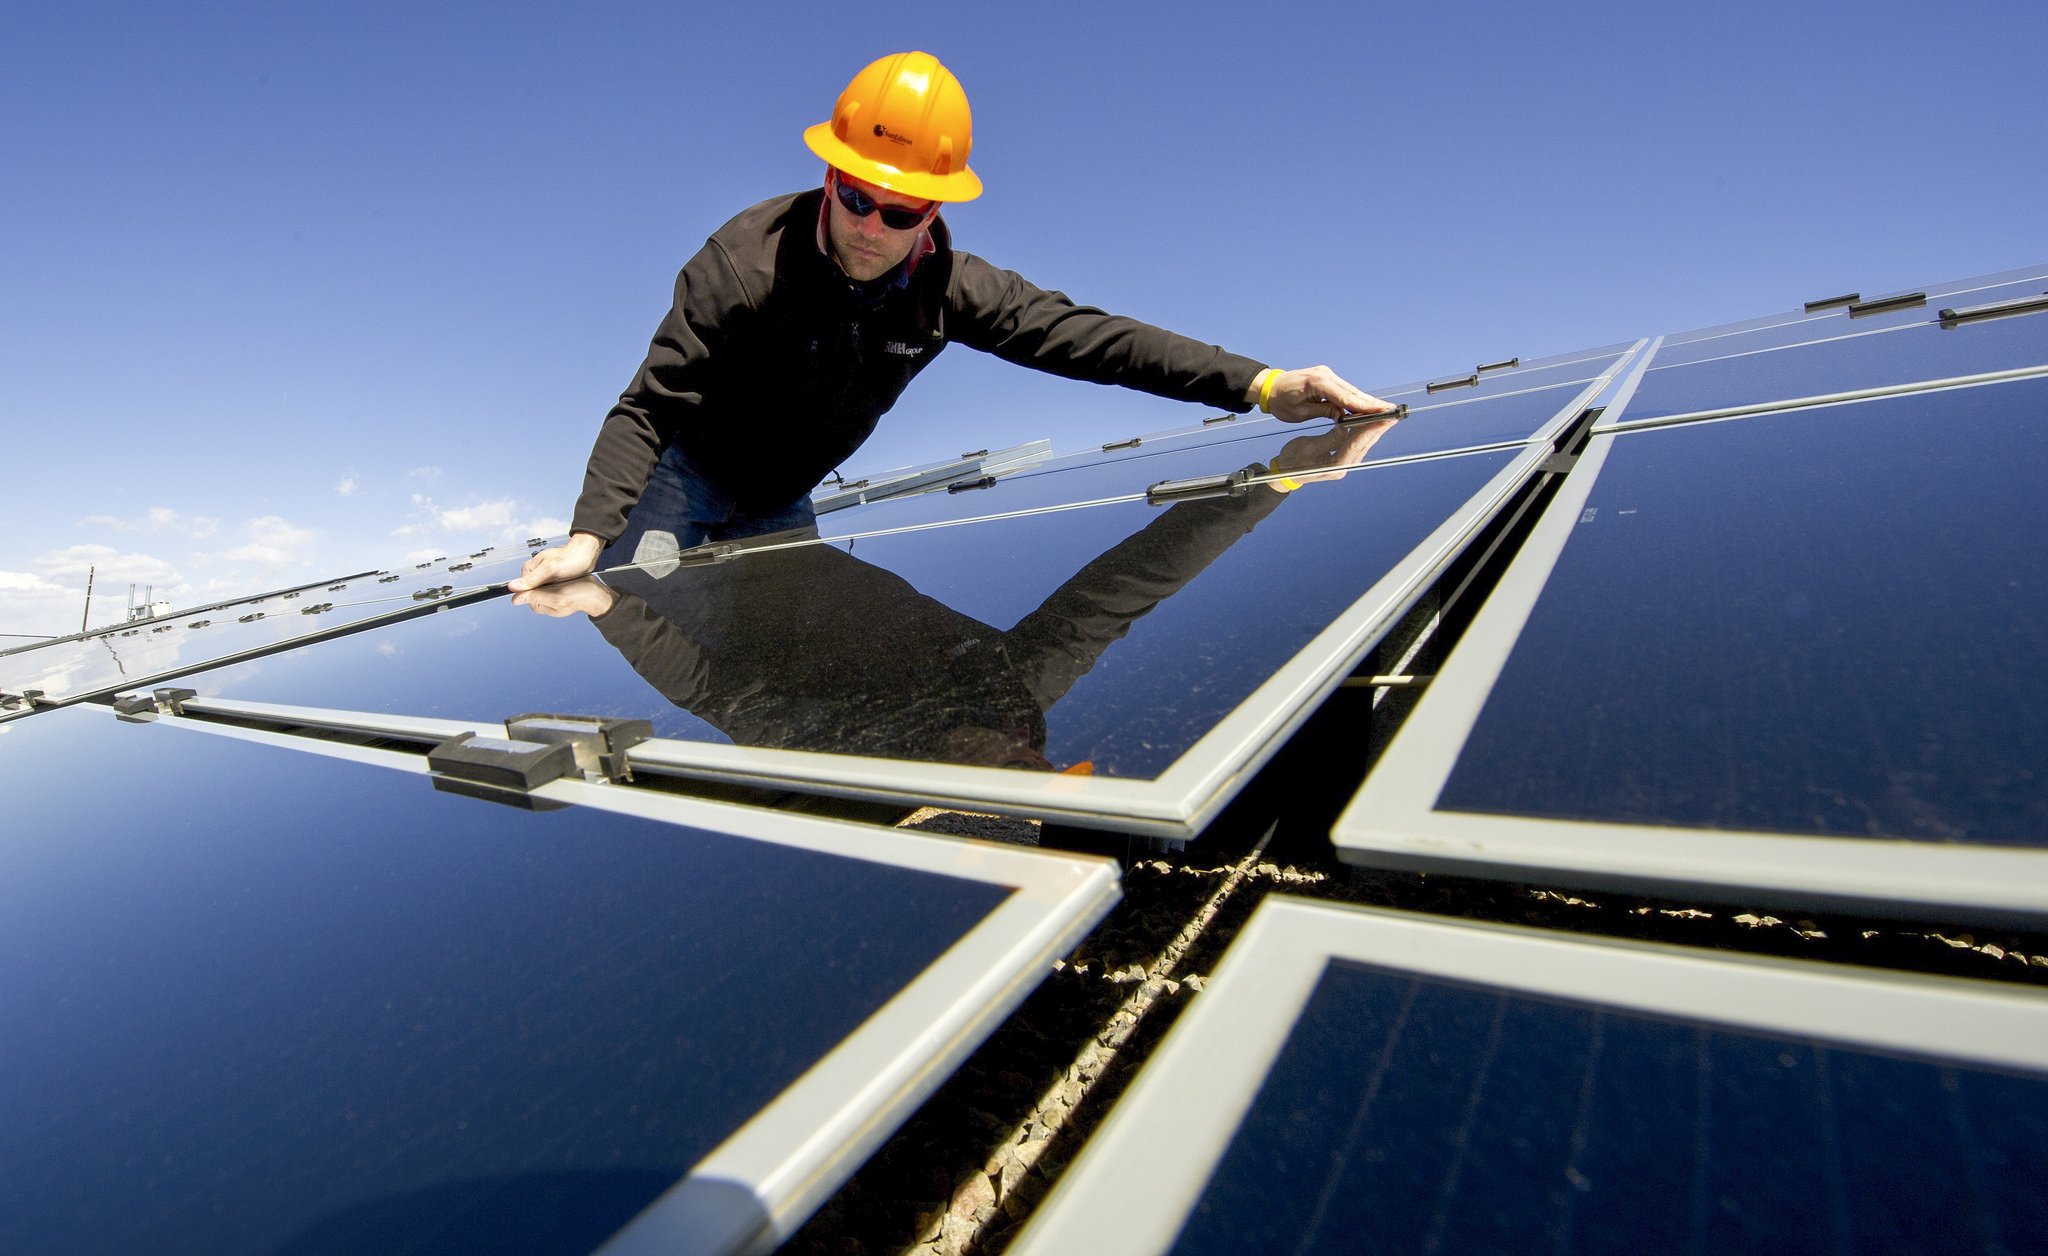 <p>Driving renewable energy installation is how many companies measure leadership. Flickr/IIP Photo Archive</p>